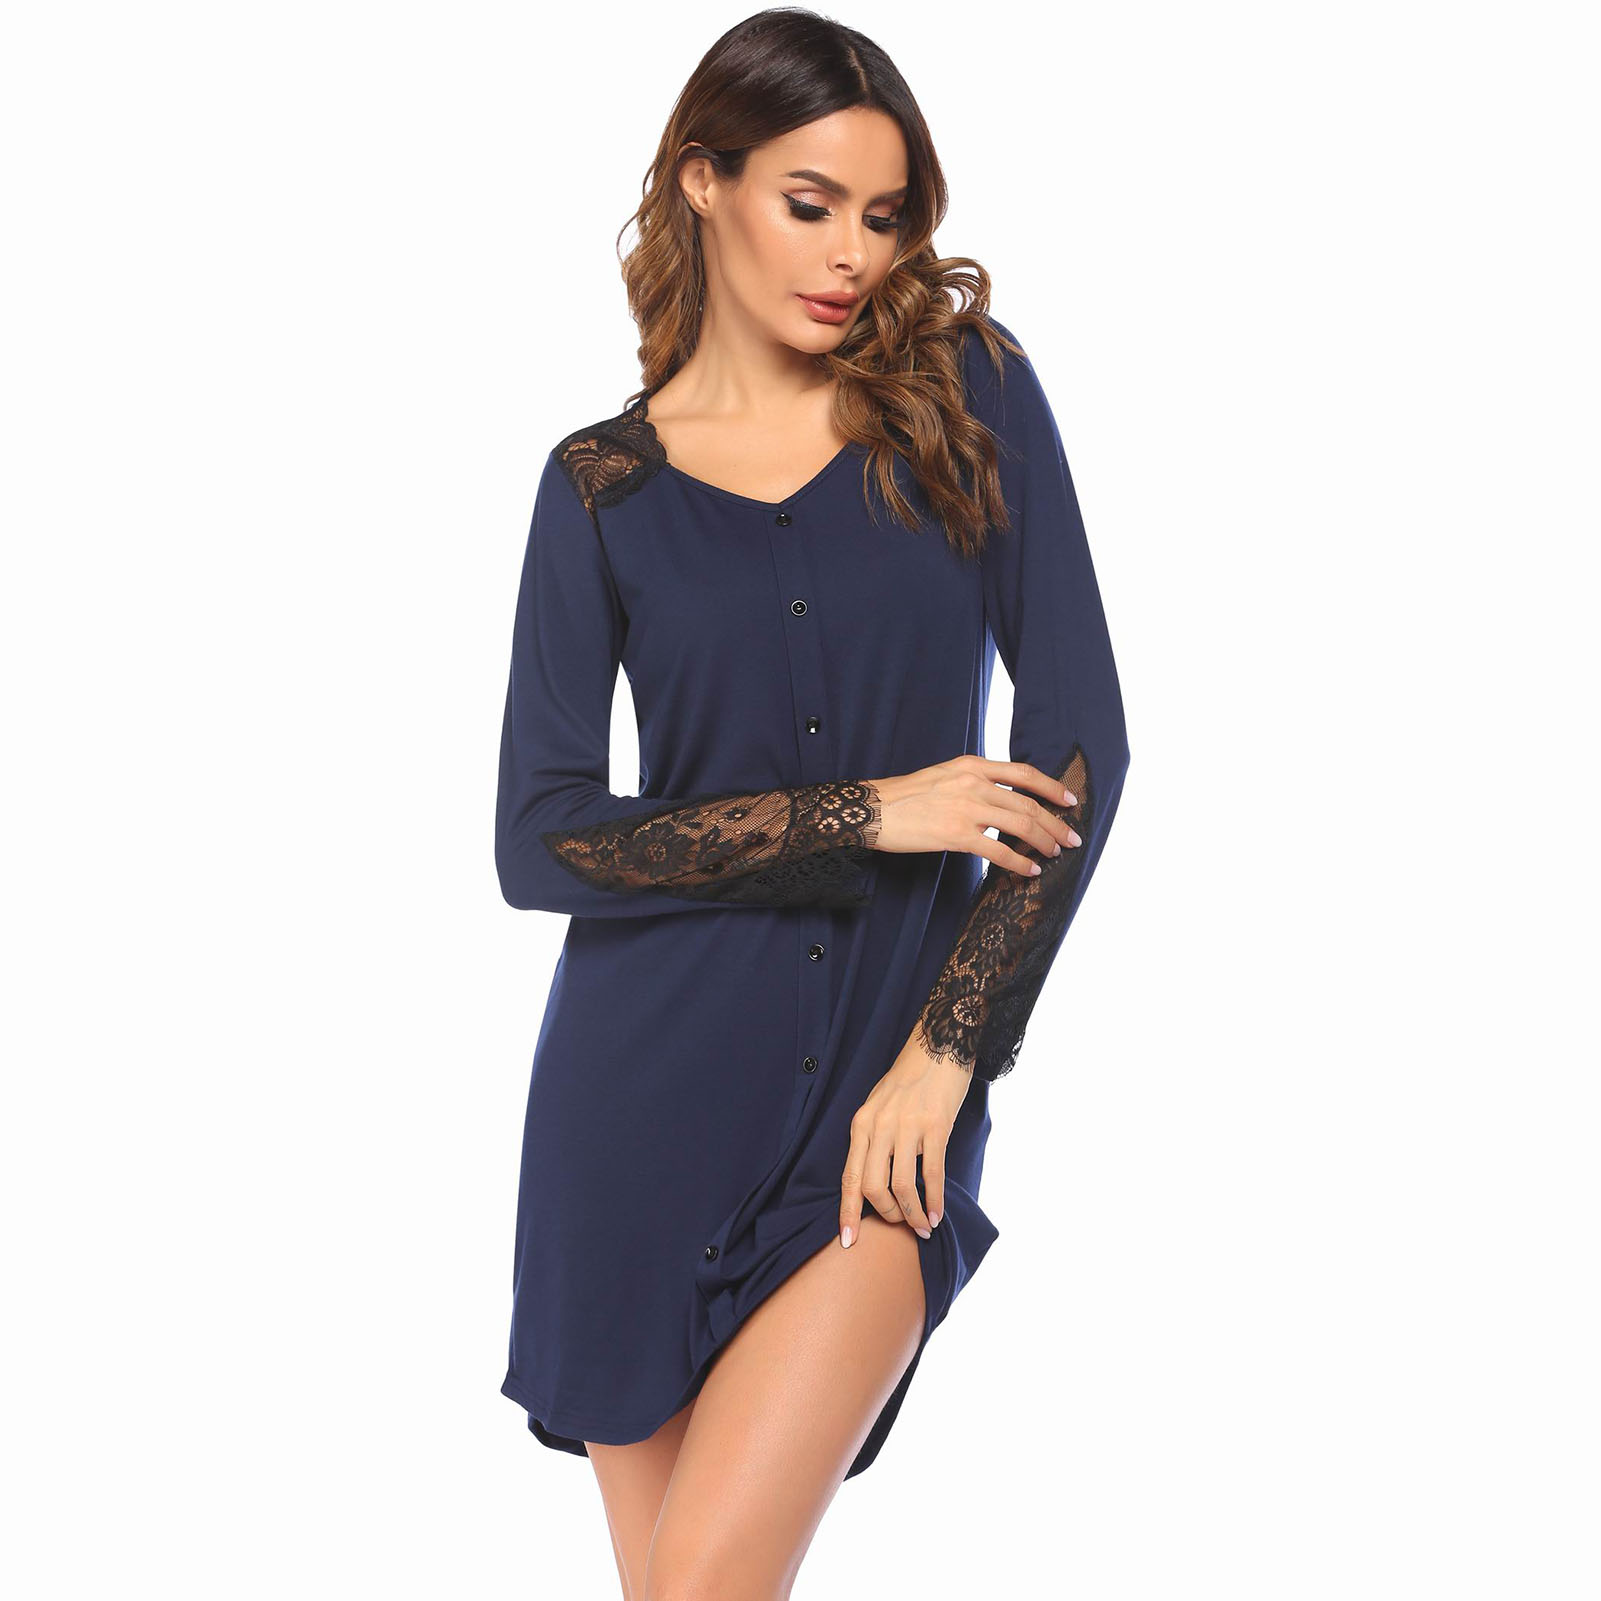 Sexy Plus Size Women Nightgown Lingerie Lace Stitching Nightdress Ladies  Solid Color Casual Nightgown Women Home Colthing